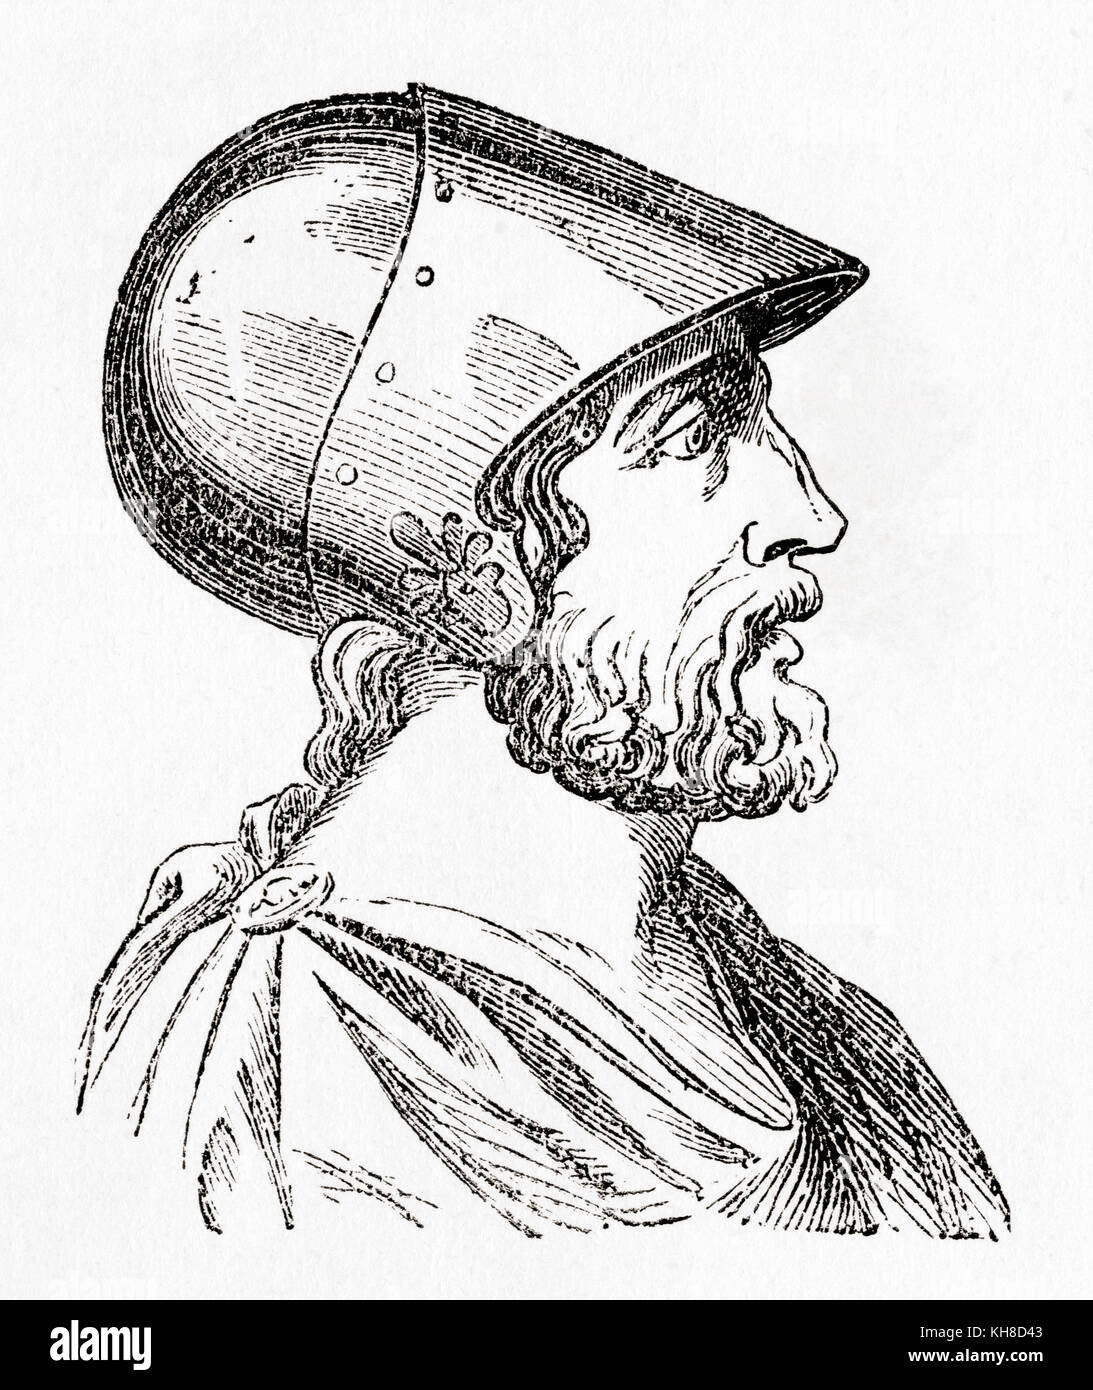 Epaminondas, d. 362 BC. Theban general and statesman of the 4th century BC.  From Ward and Lock's Illustrated - Stock Image